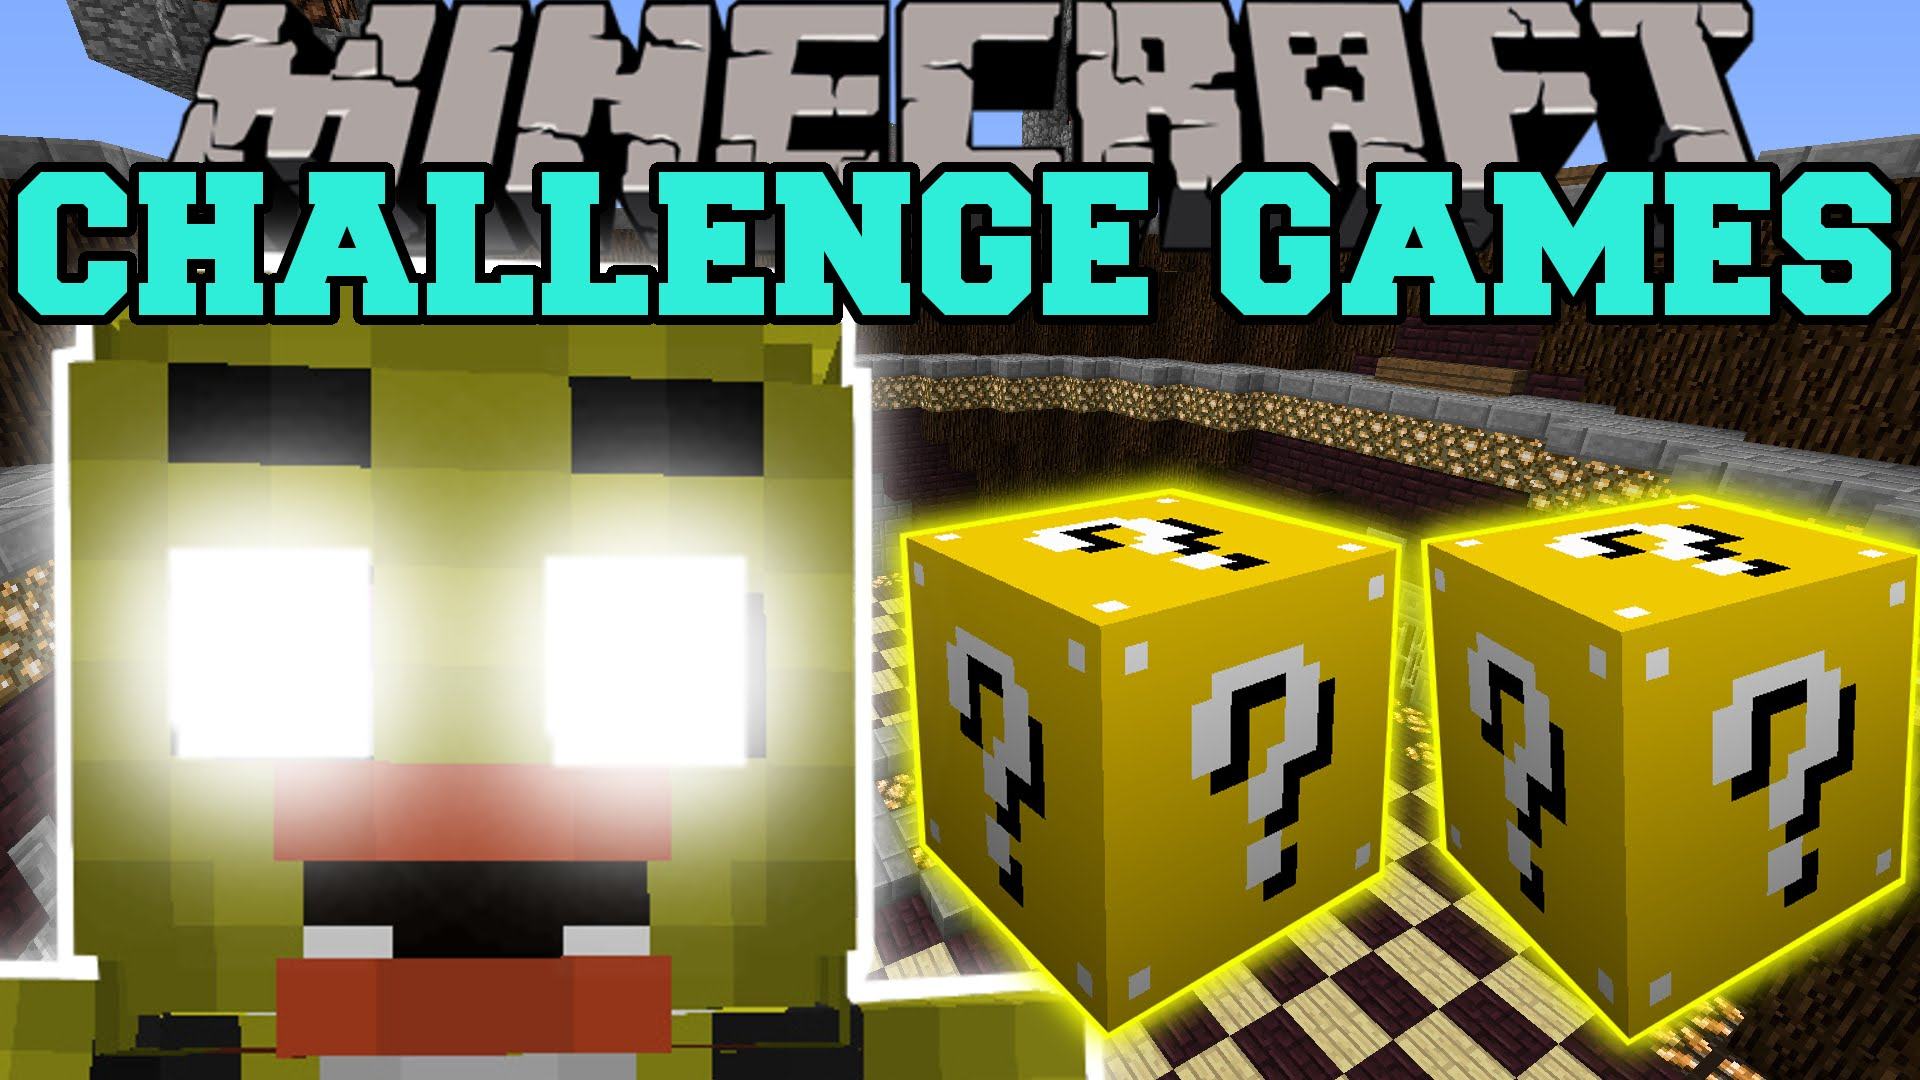 games pat and jen minecraft lucky block challenge games pat and jen 1920x1080